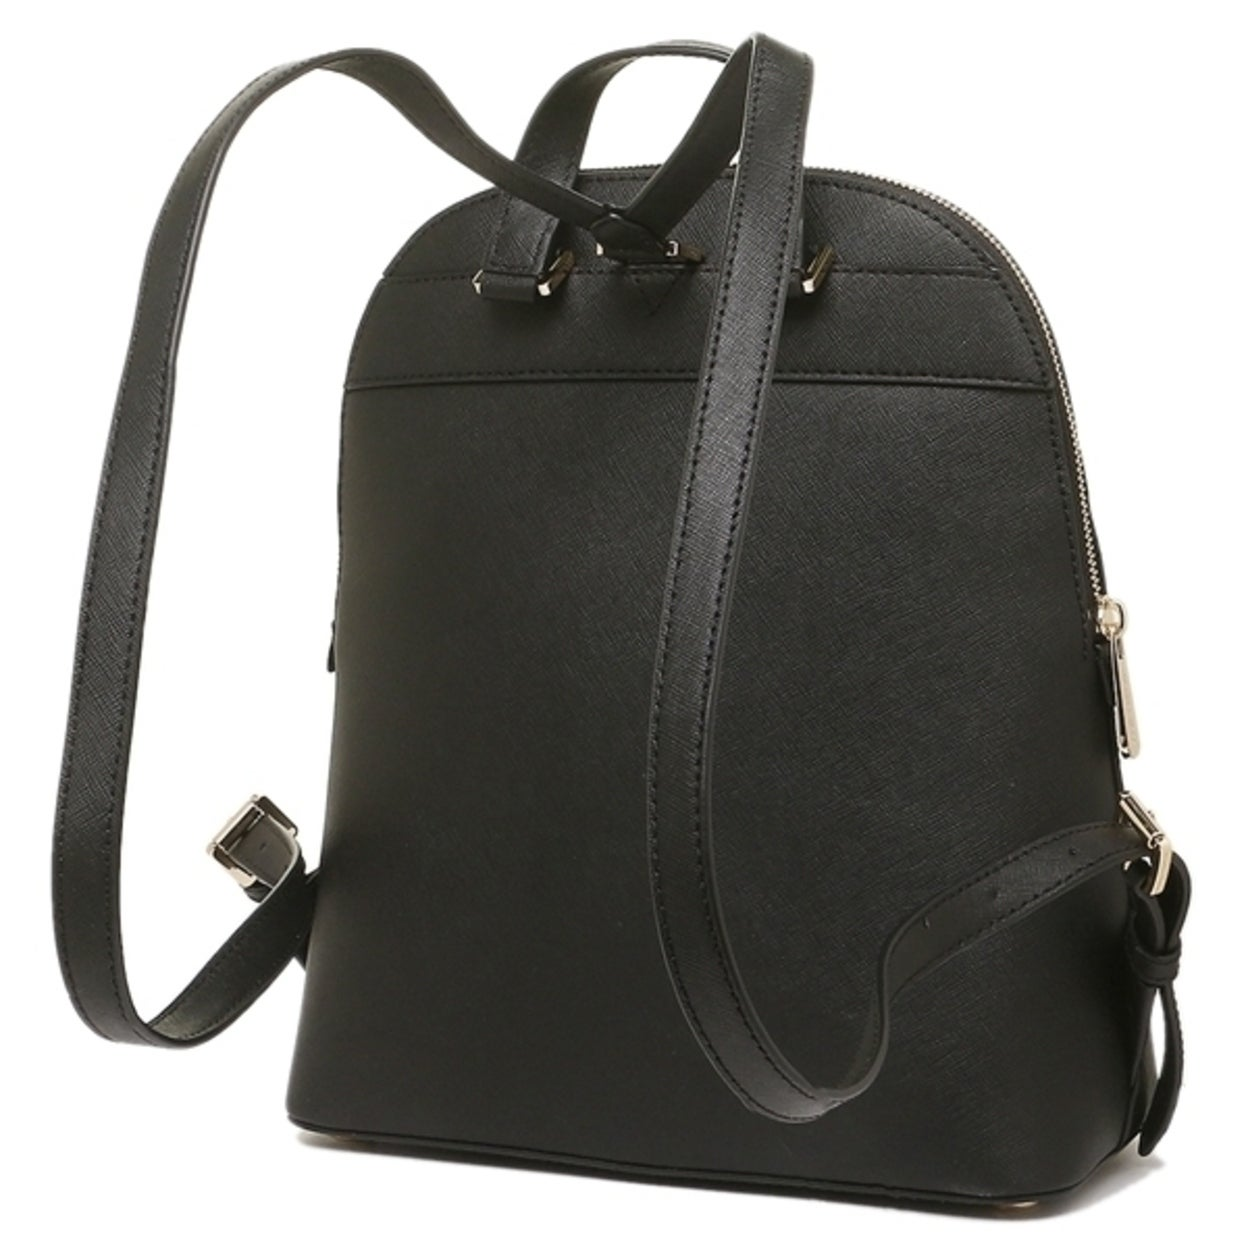 8cc69aabb237 Shop Michael Kors Emmy Leather Backpack 35S8GY3B7L - Free Shipping Today -  Overstock - 23175164